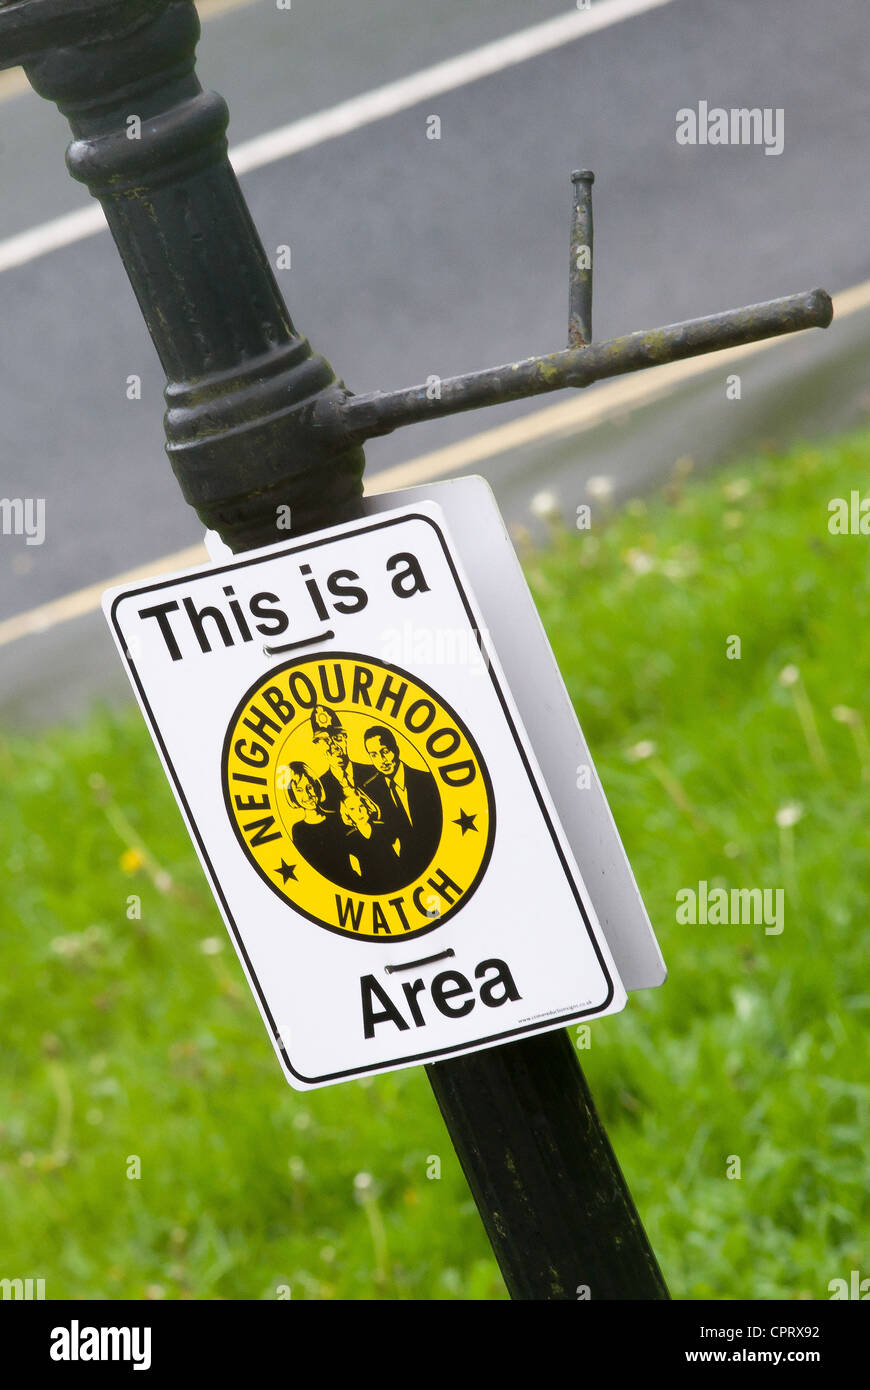 Neighbourhood Watch Area sign attached to an antique Victorian gas lamp post in Bristol UK - Stock Image